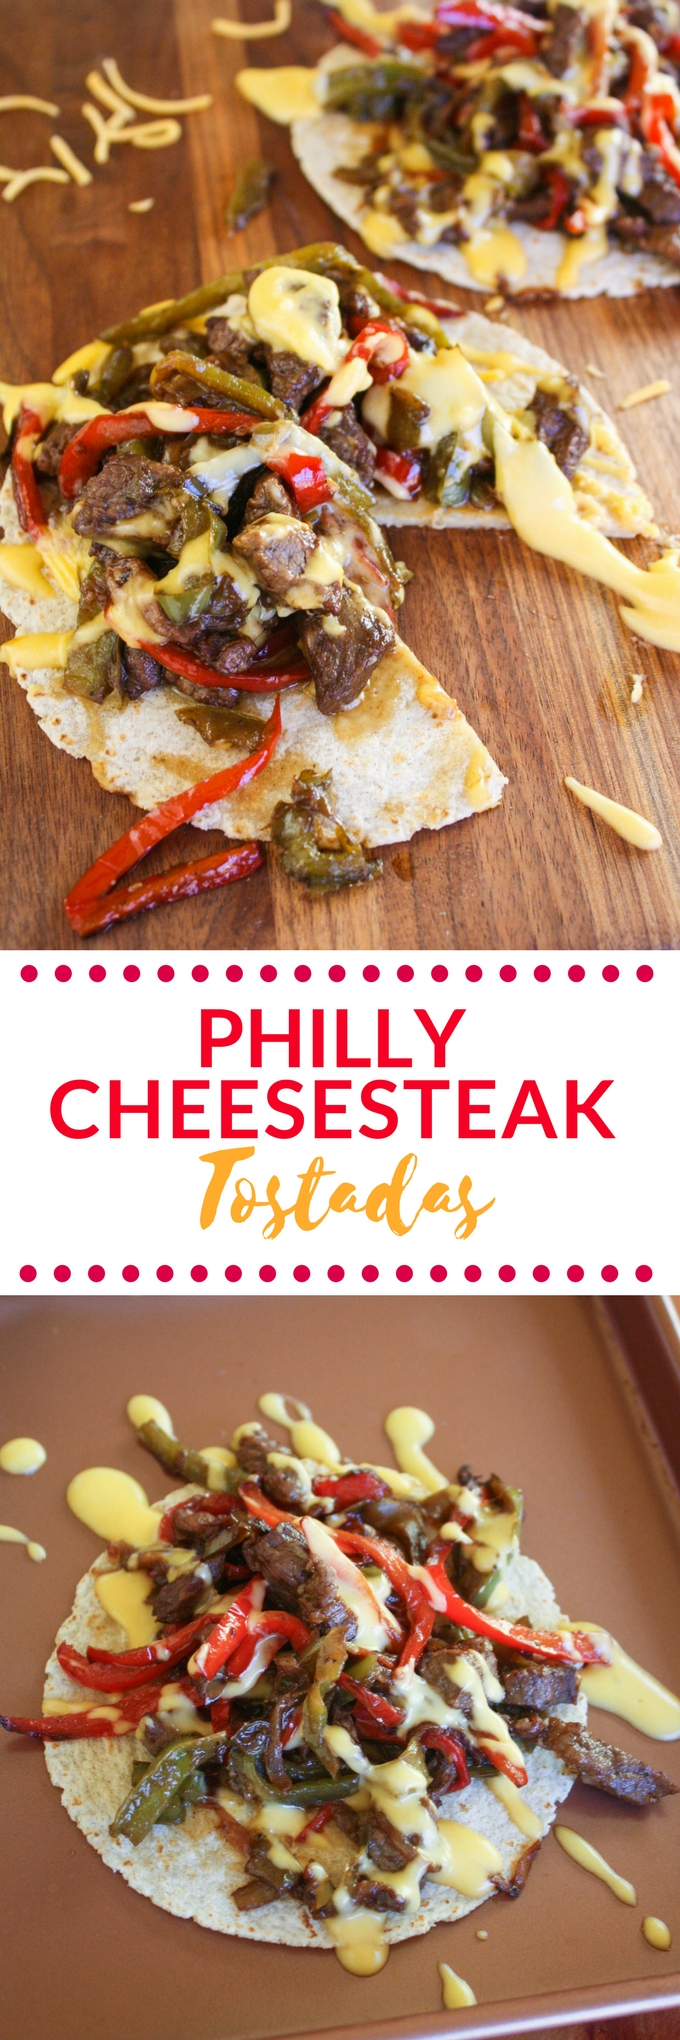 Philly Cheesesteak Tostadas are a fun meal any night of the week. Philly Cheesesteak Tostadas are a great take on the classic sandwich!